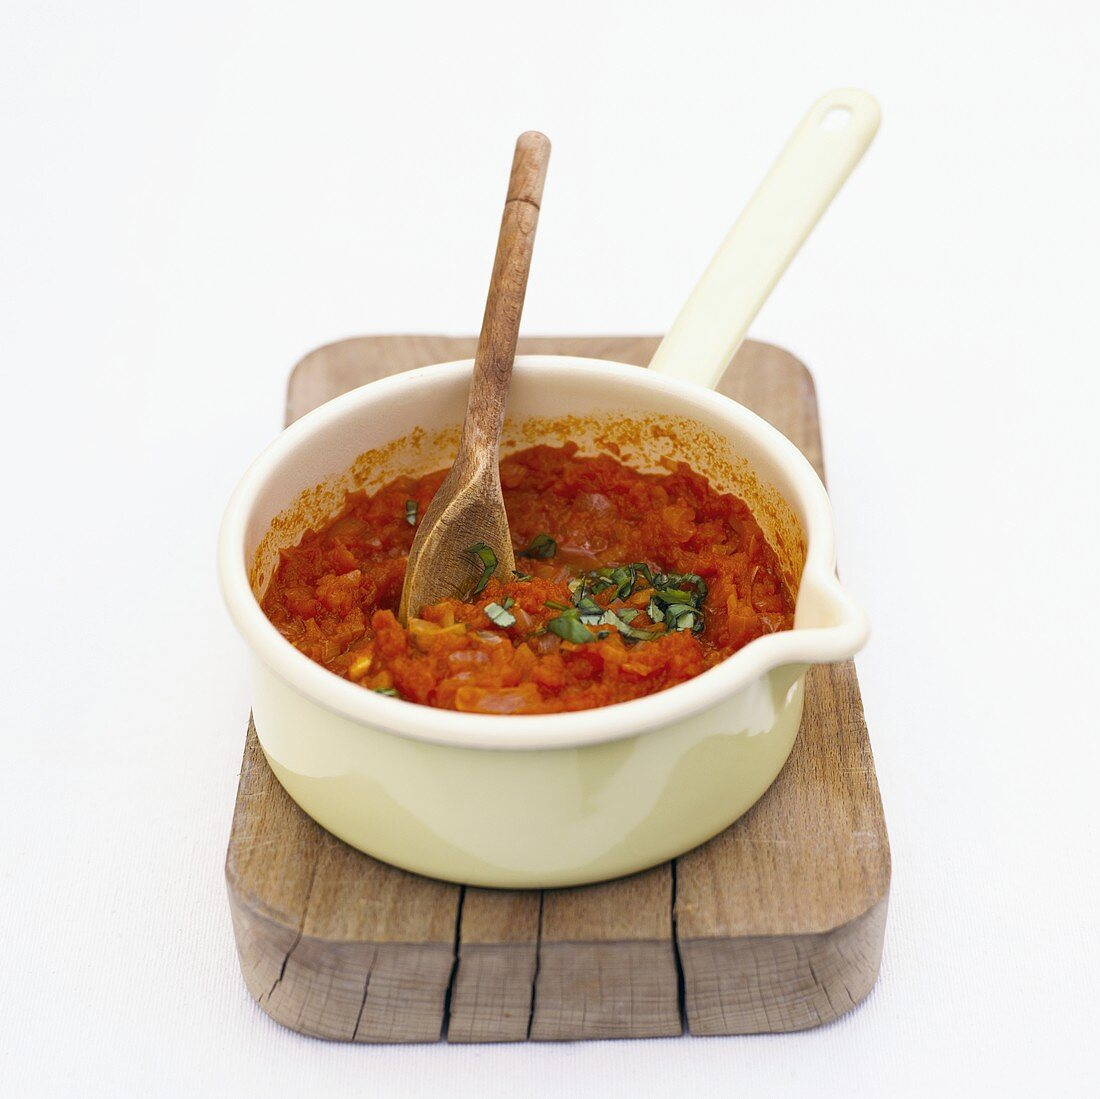 Tomato and vegetable sauce in a pan